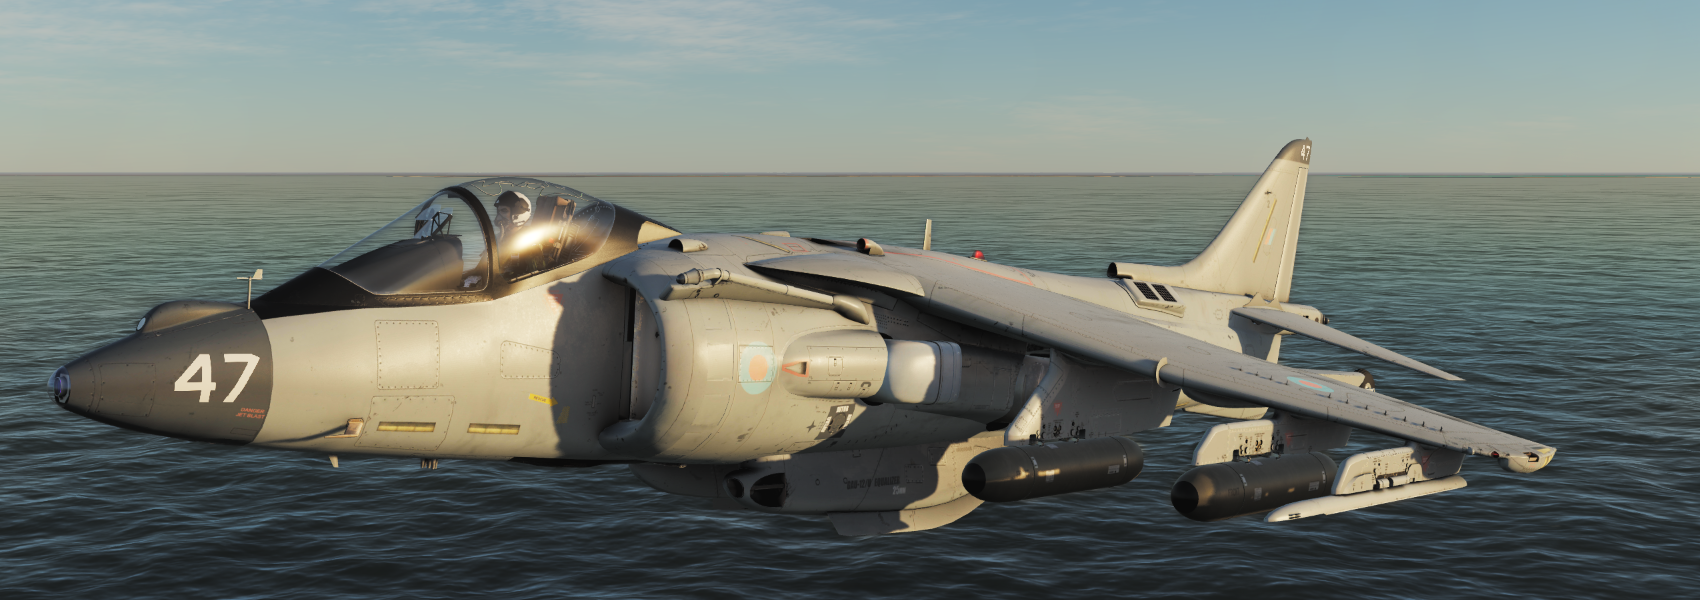 RAF RN Harrier GR Skins [Fictional and Generic] Desert Pink and Grey